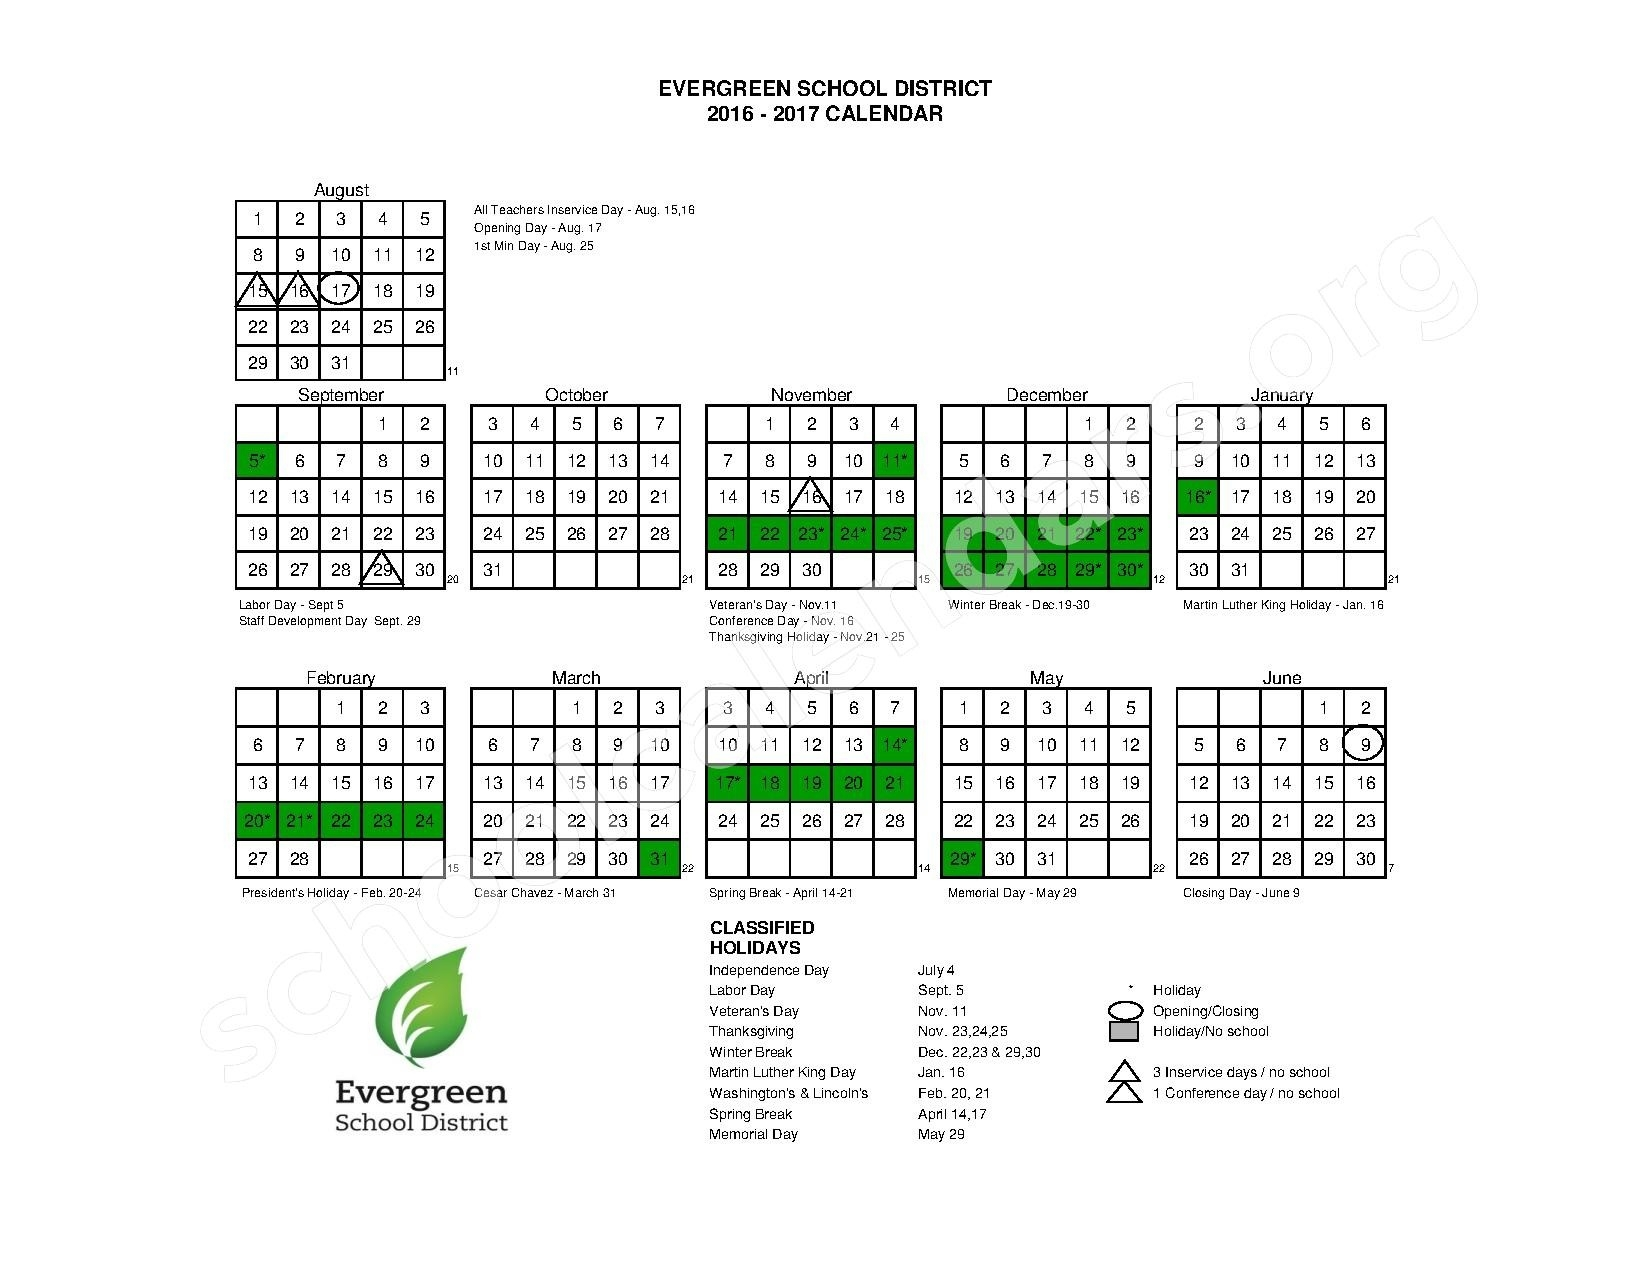 2016 - 2017 School Calendar | Evergreen School District – San Jose, Ca_Calendar Evergreen School District